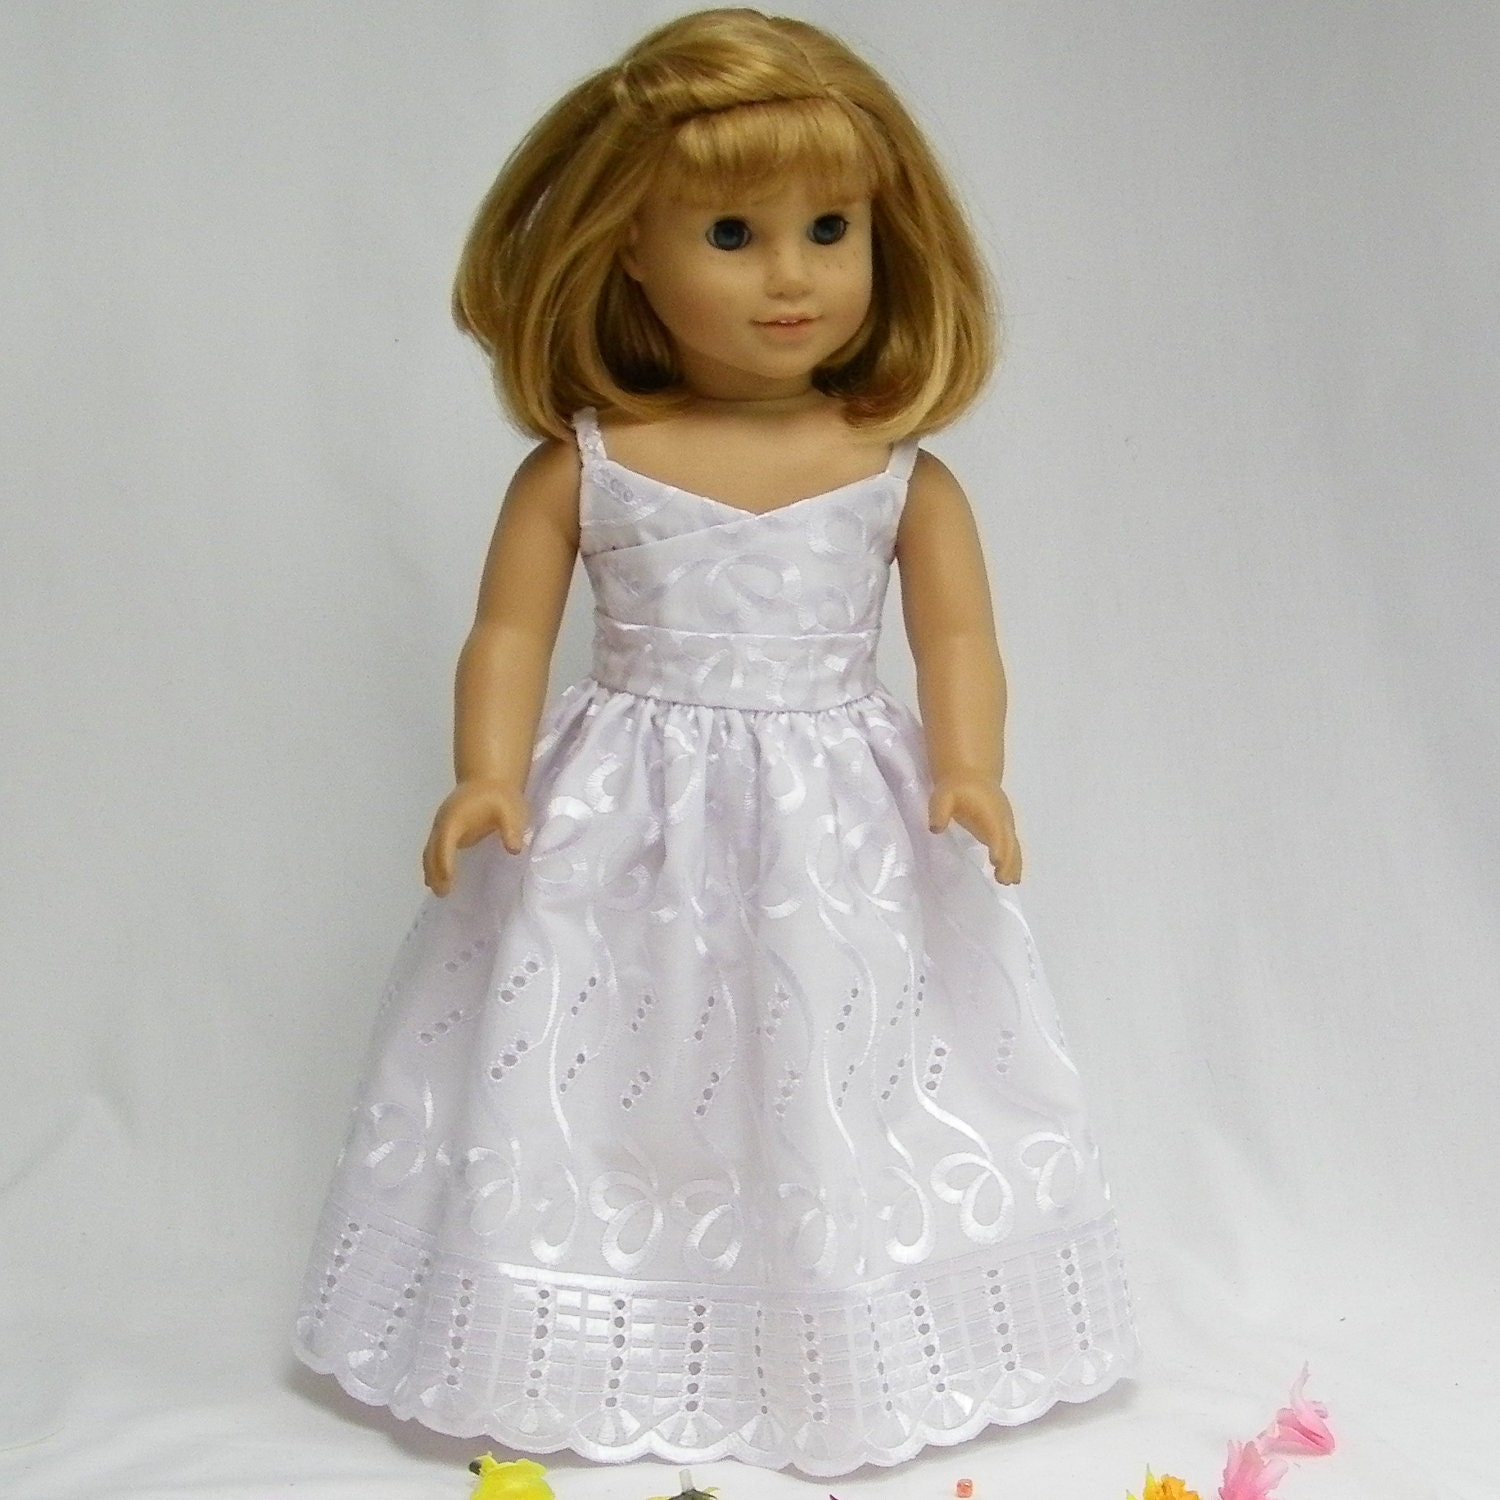 Share for American girl wedding dress